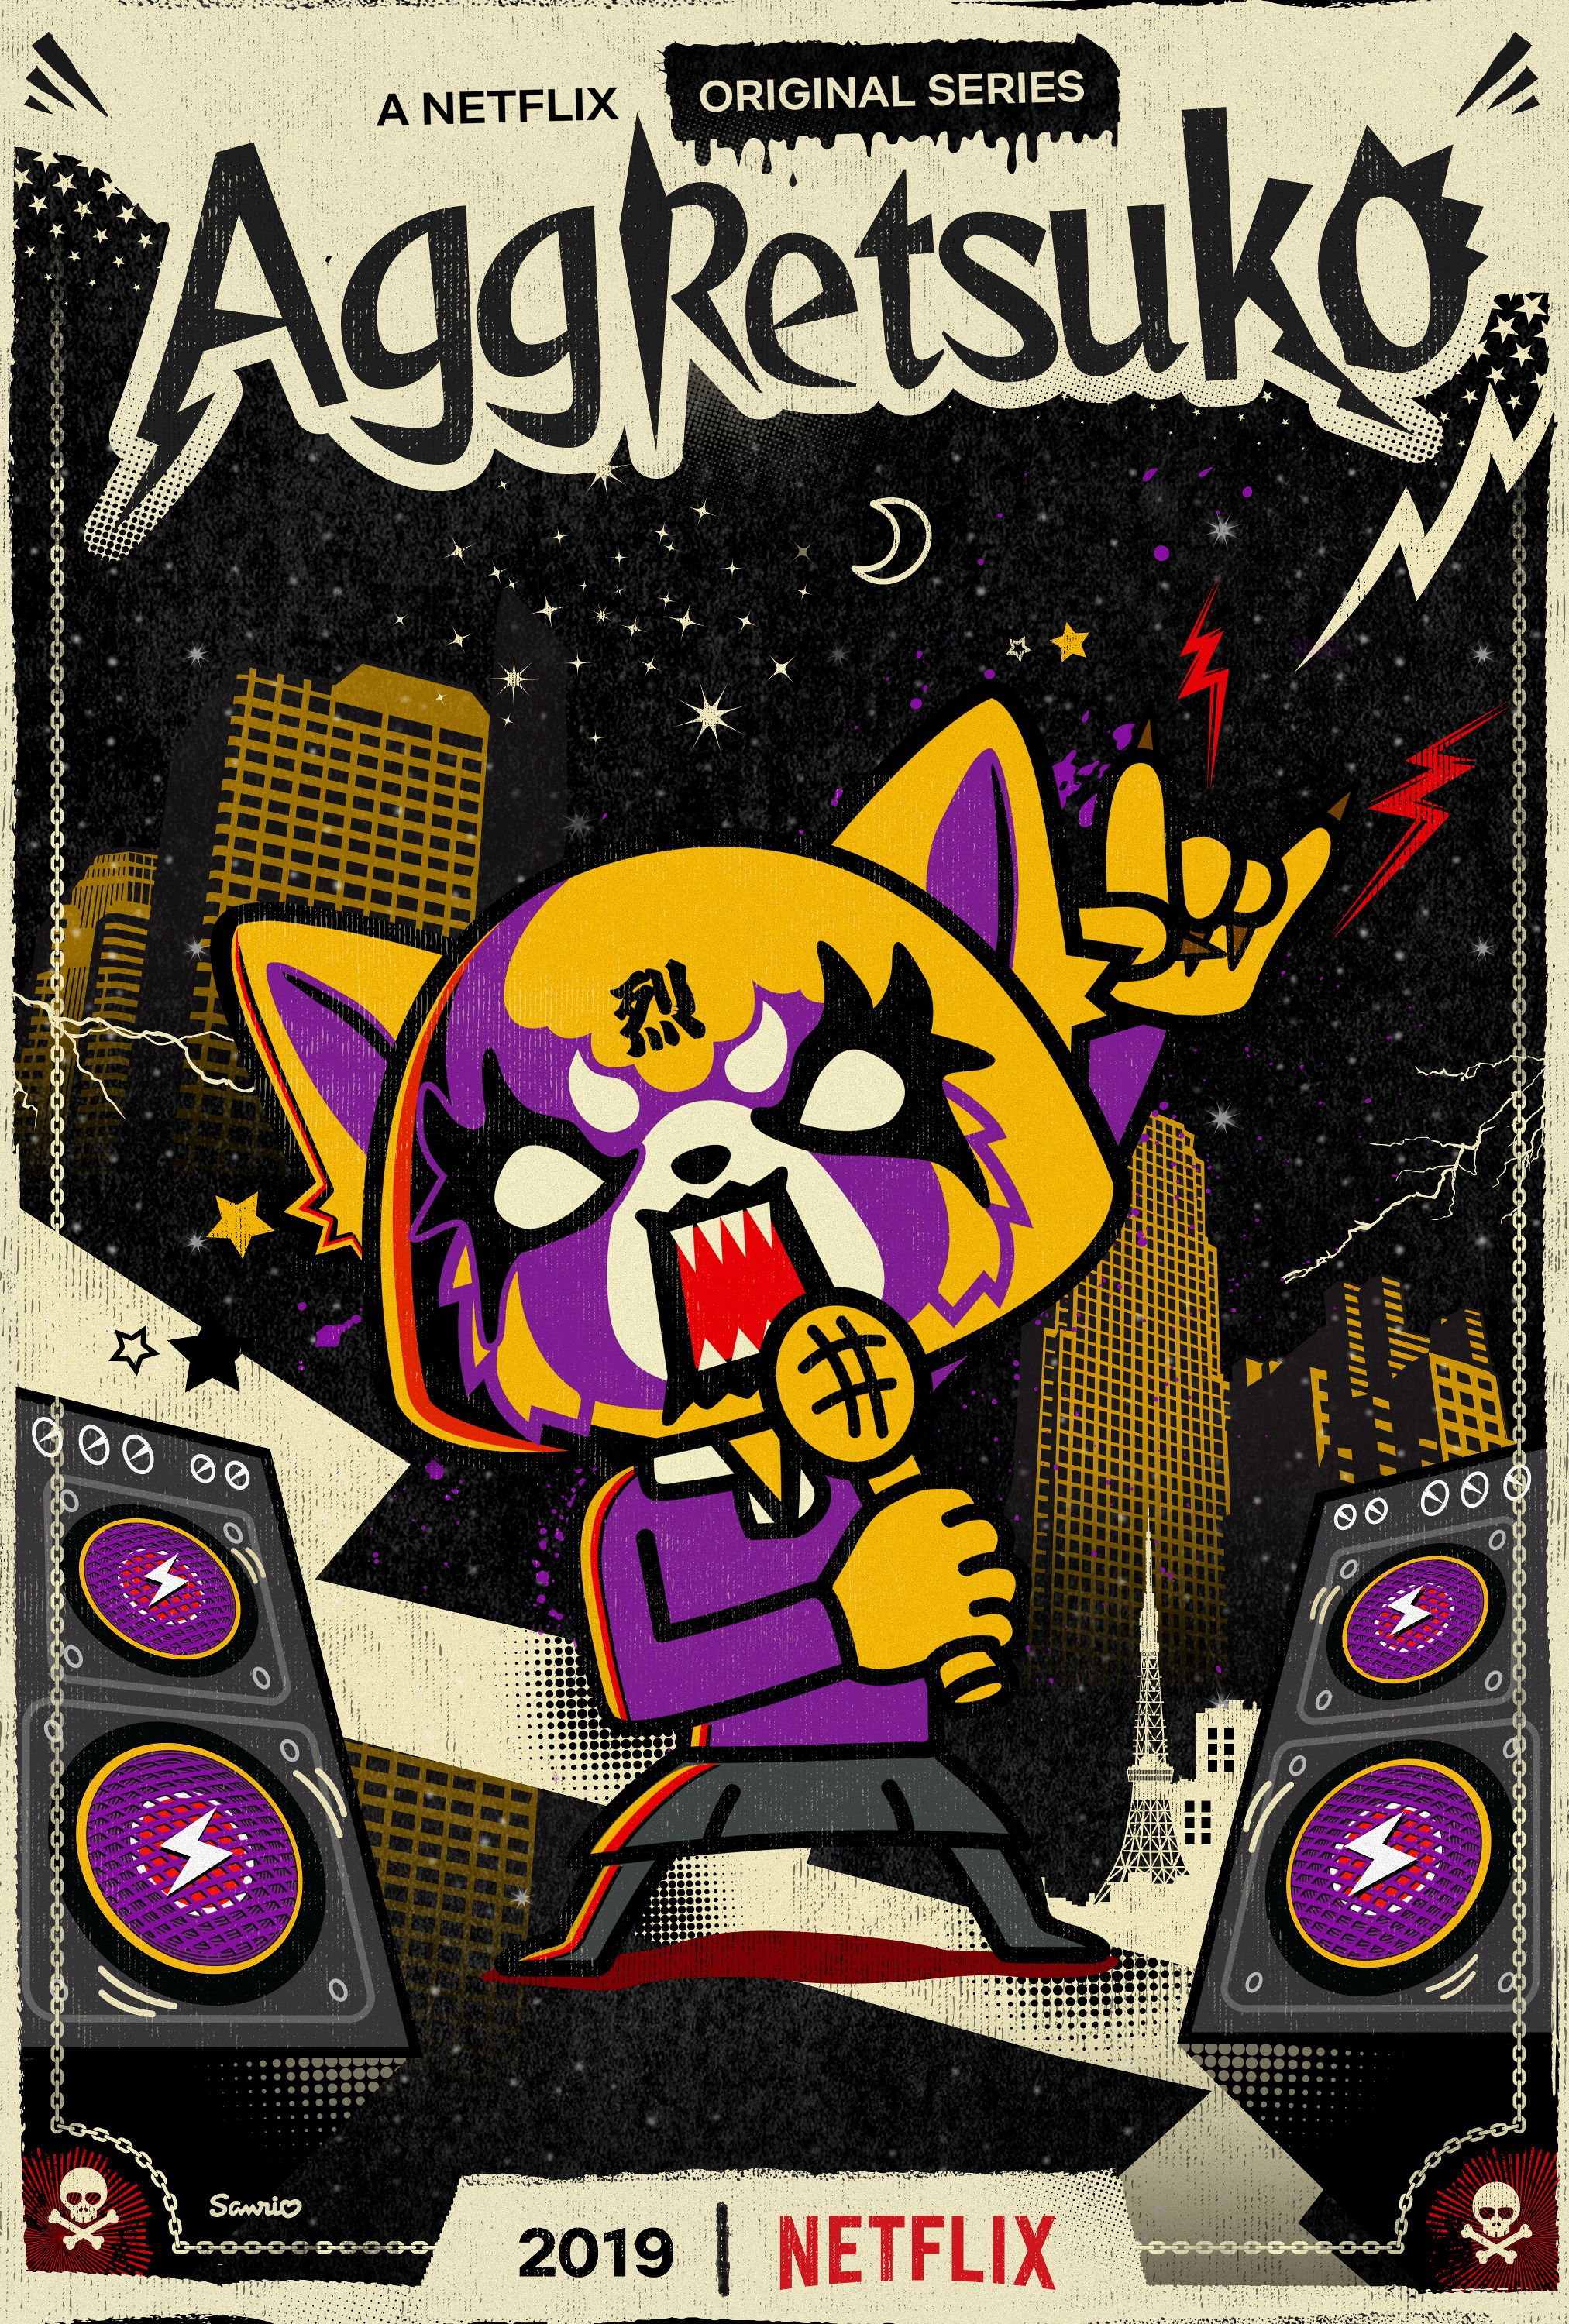 Aggretsuko Best anime shows, Top anime shows, Anime shows